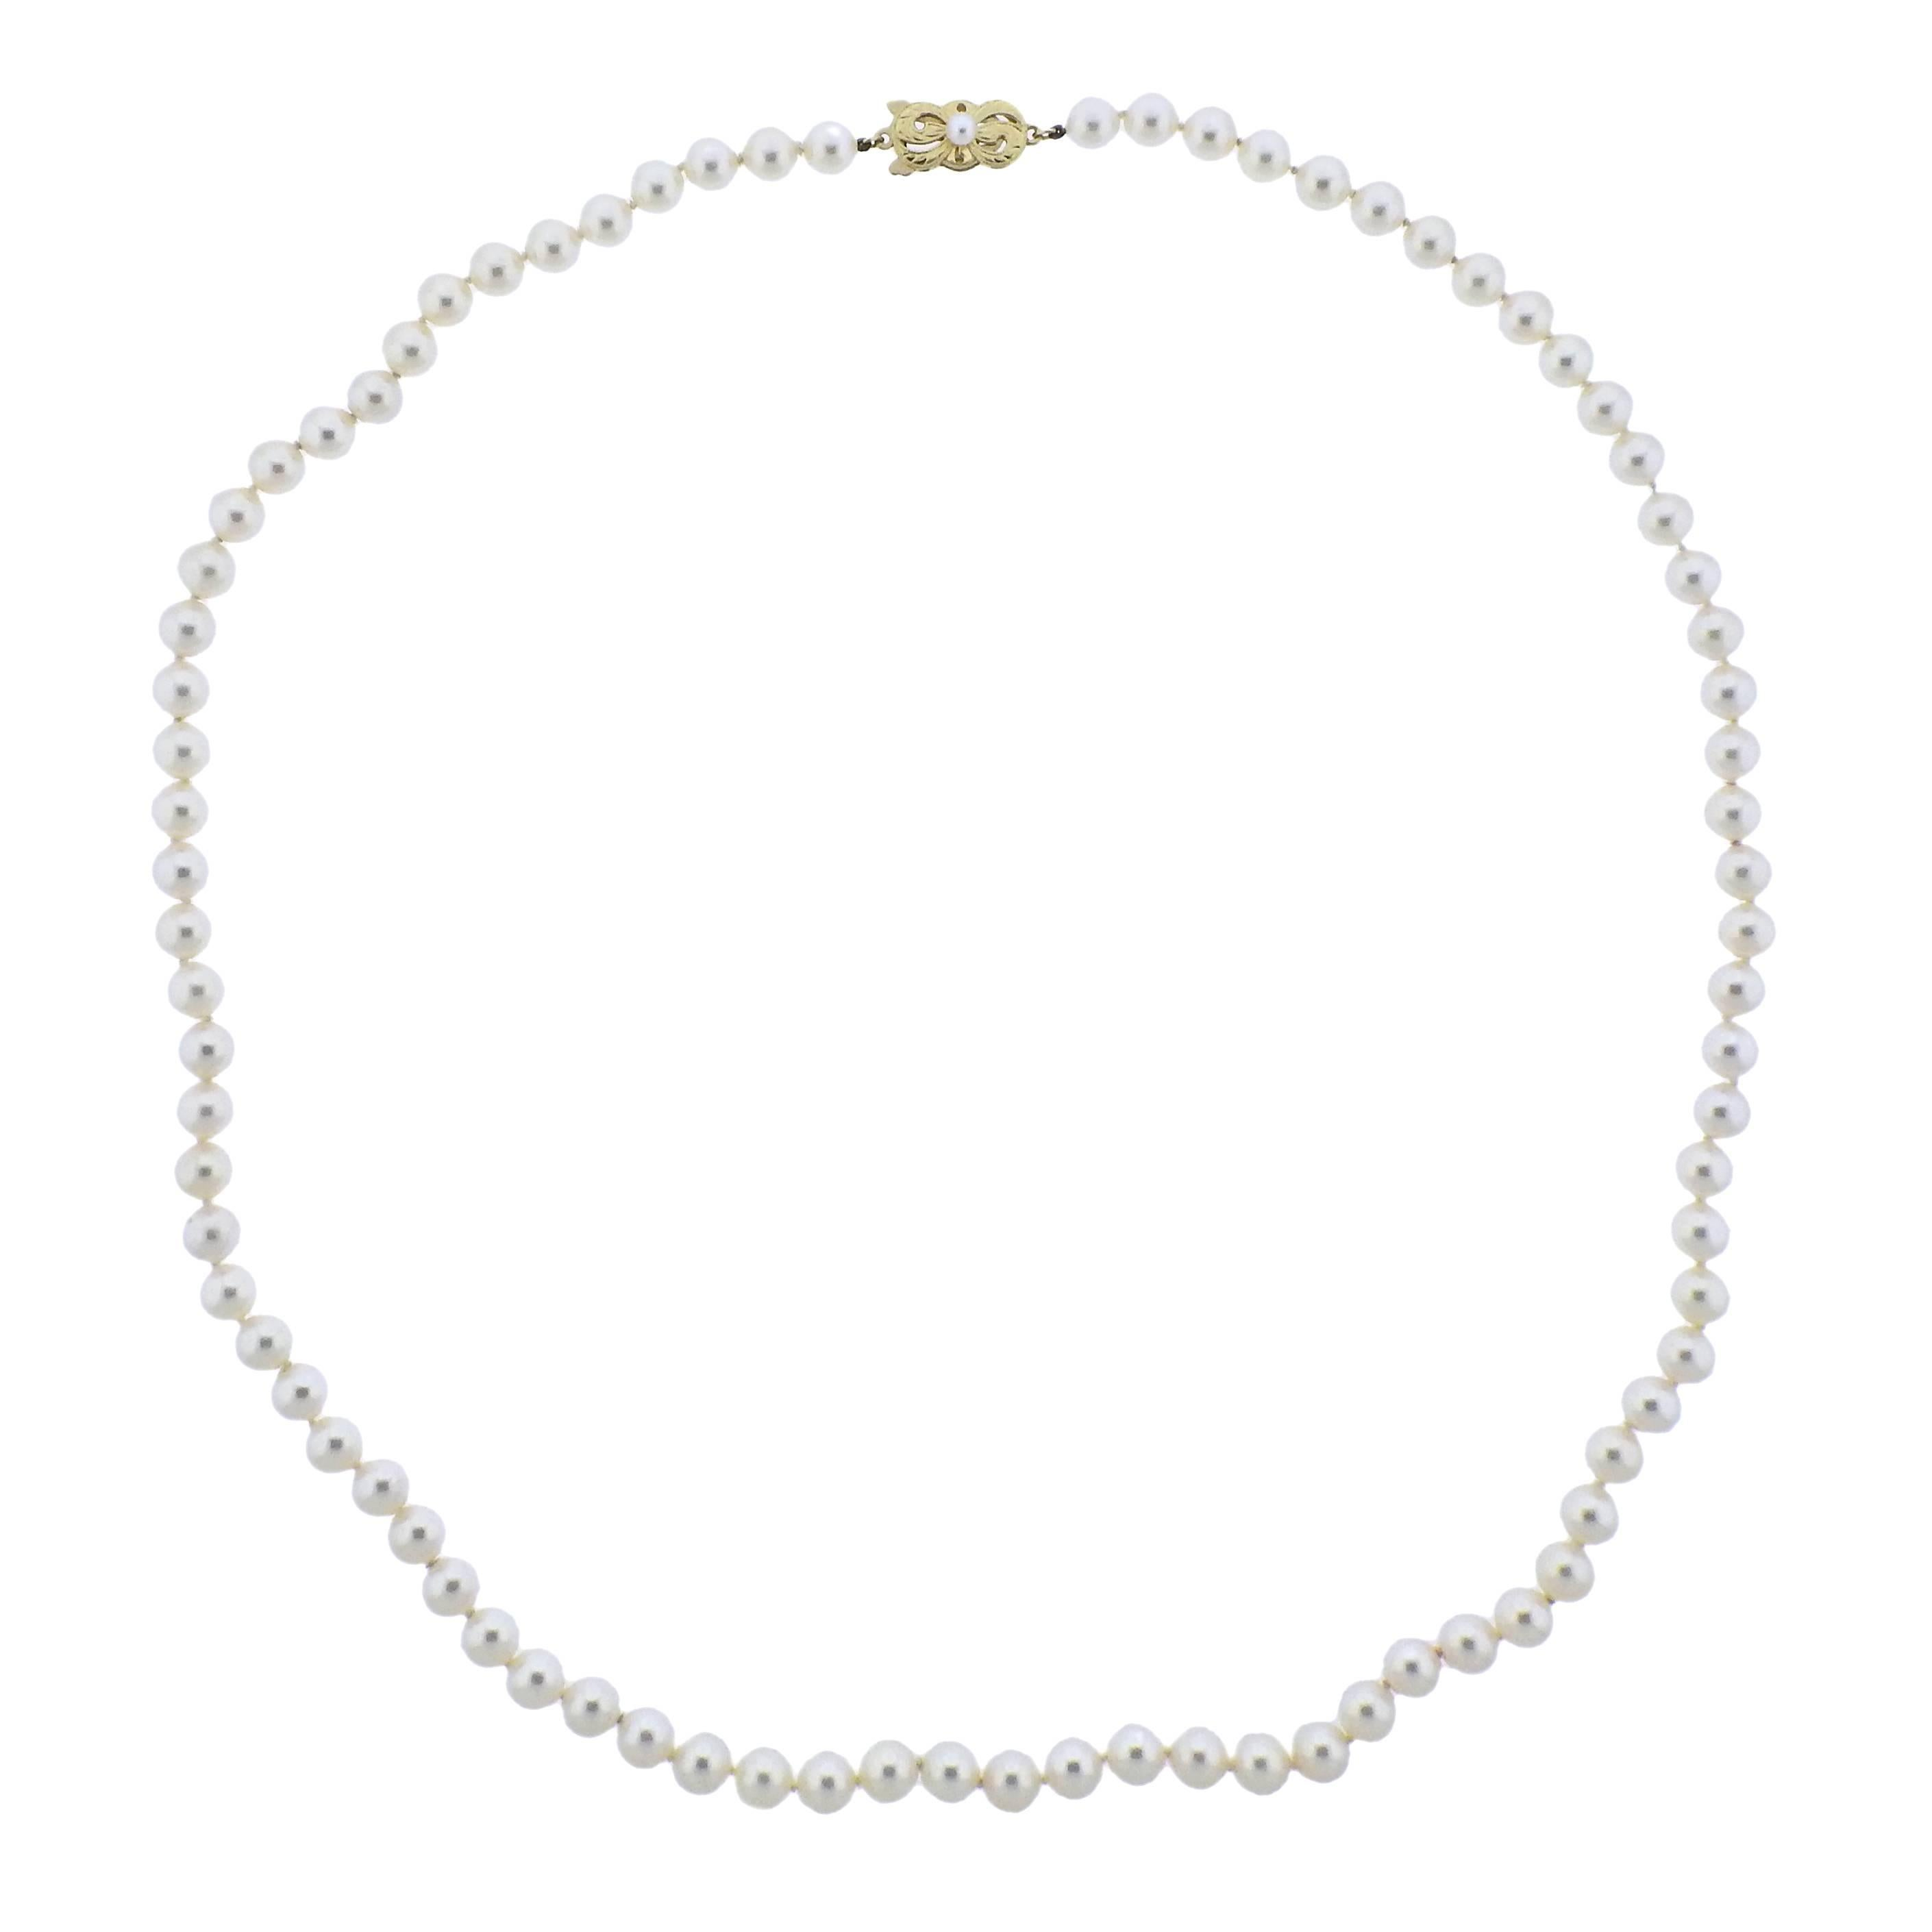 pendant the beauty pin necklace derives pearls of cultured mikimoto baroque natural pearl